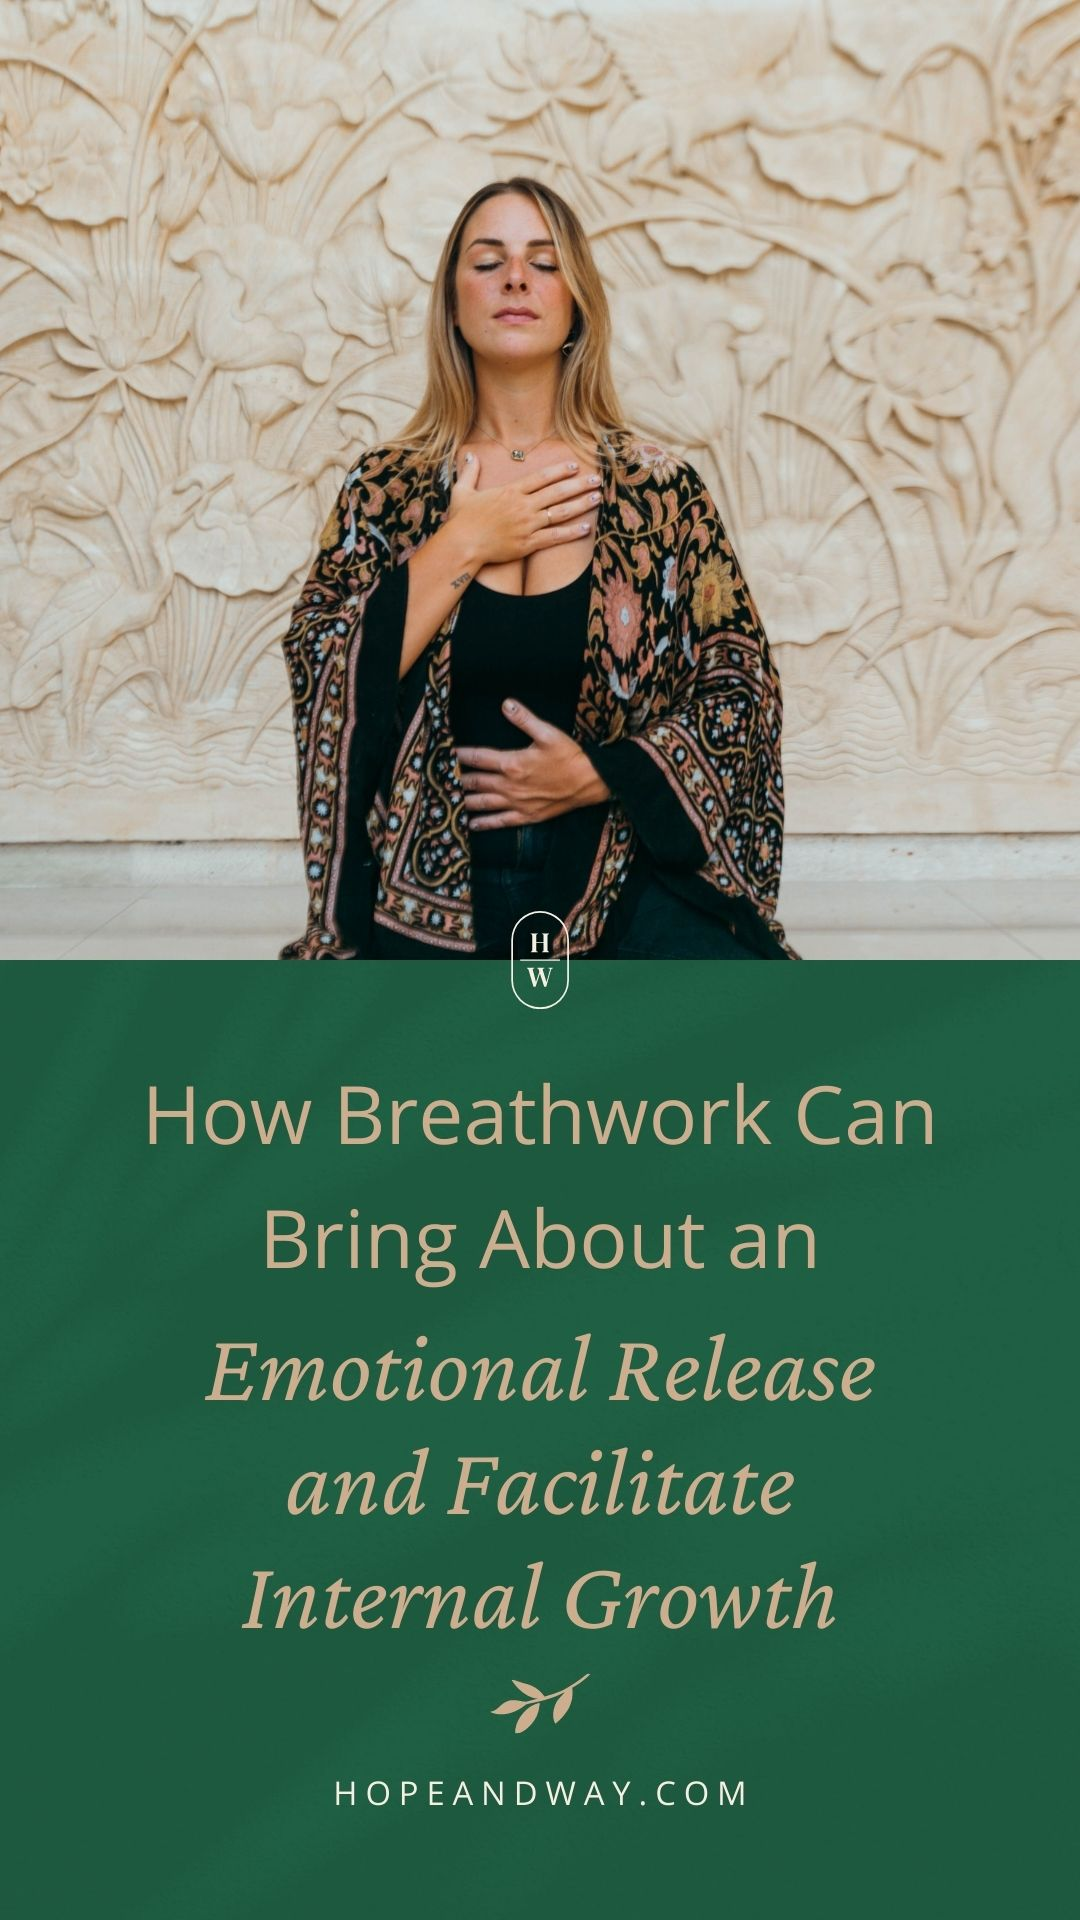 How Breathwork Can Bring About an Emotional Release and Facilitate Internal Growth - Interview with Sara Silverstein